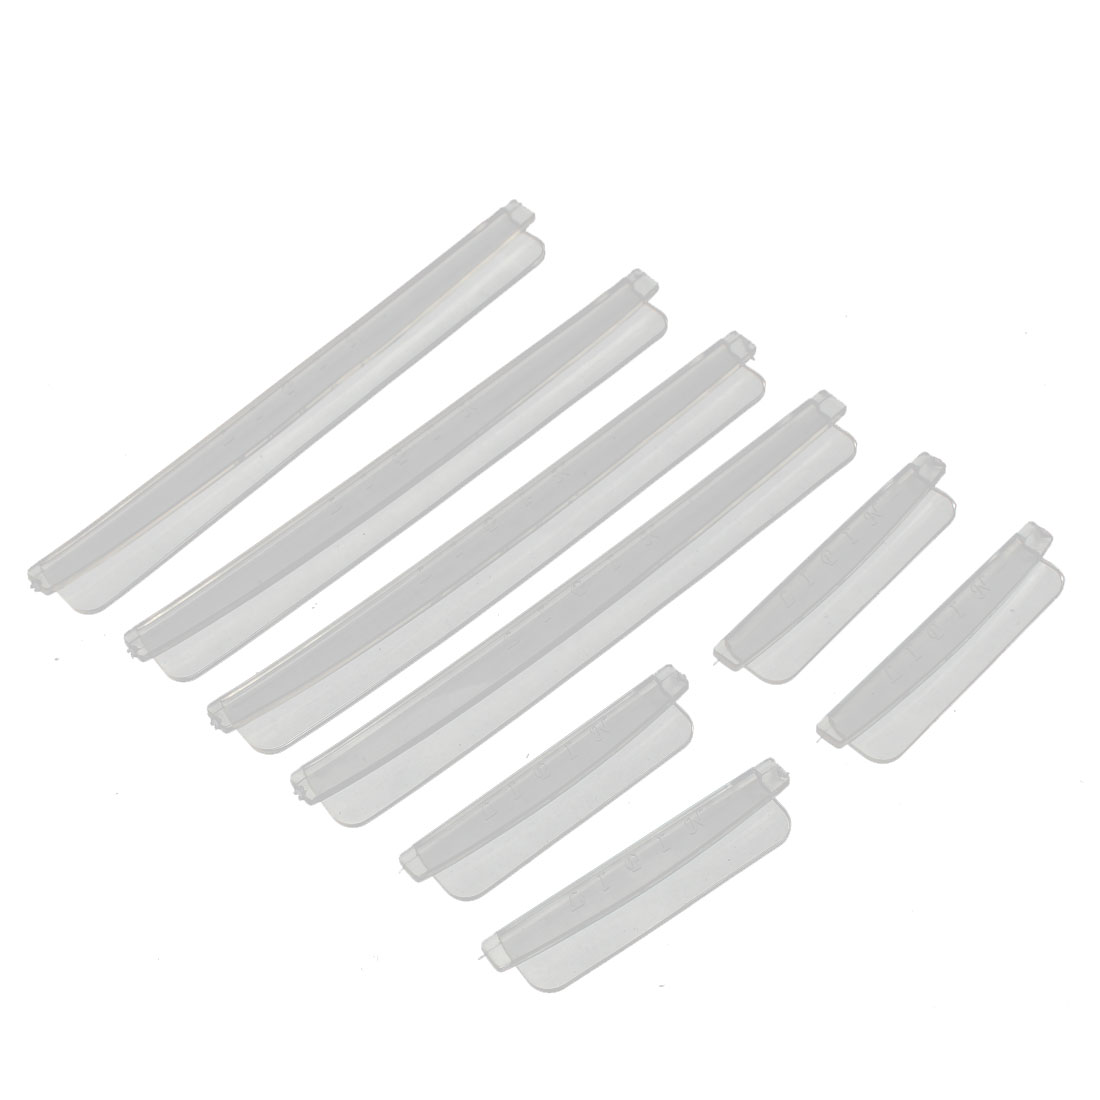 Plastic Auto Car Door Edge Scratch Strip Protector Guards Clear 8 in 1